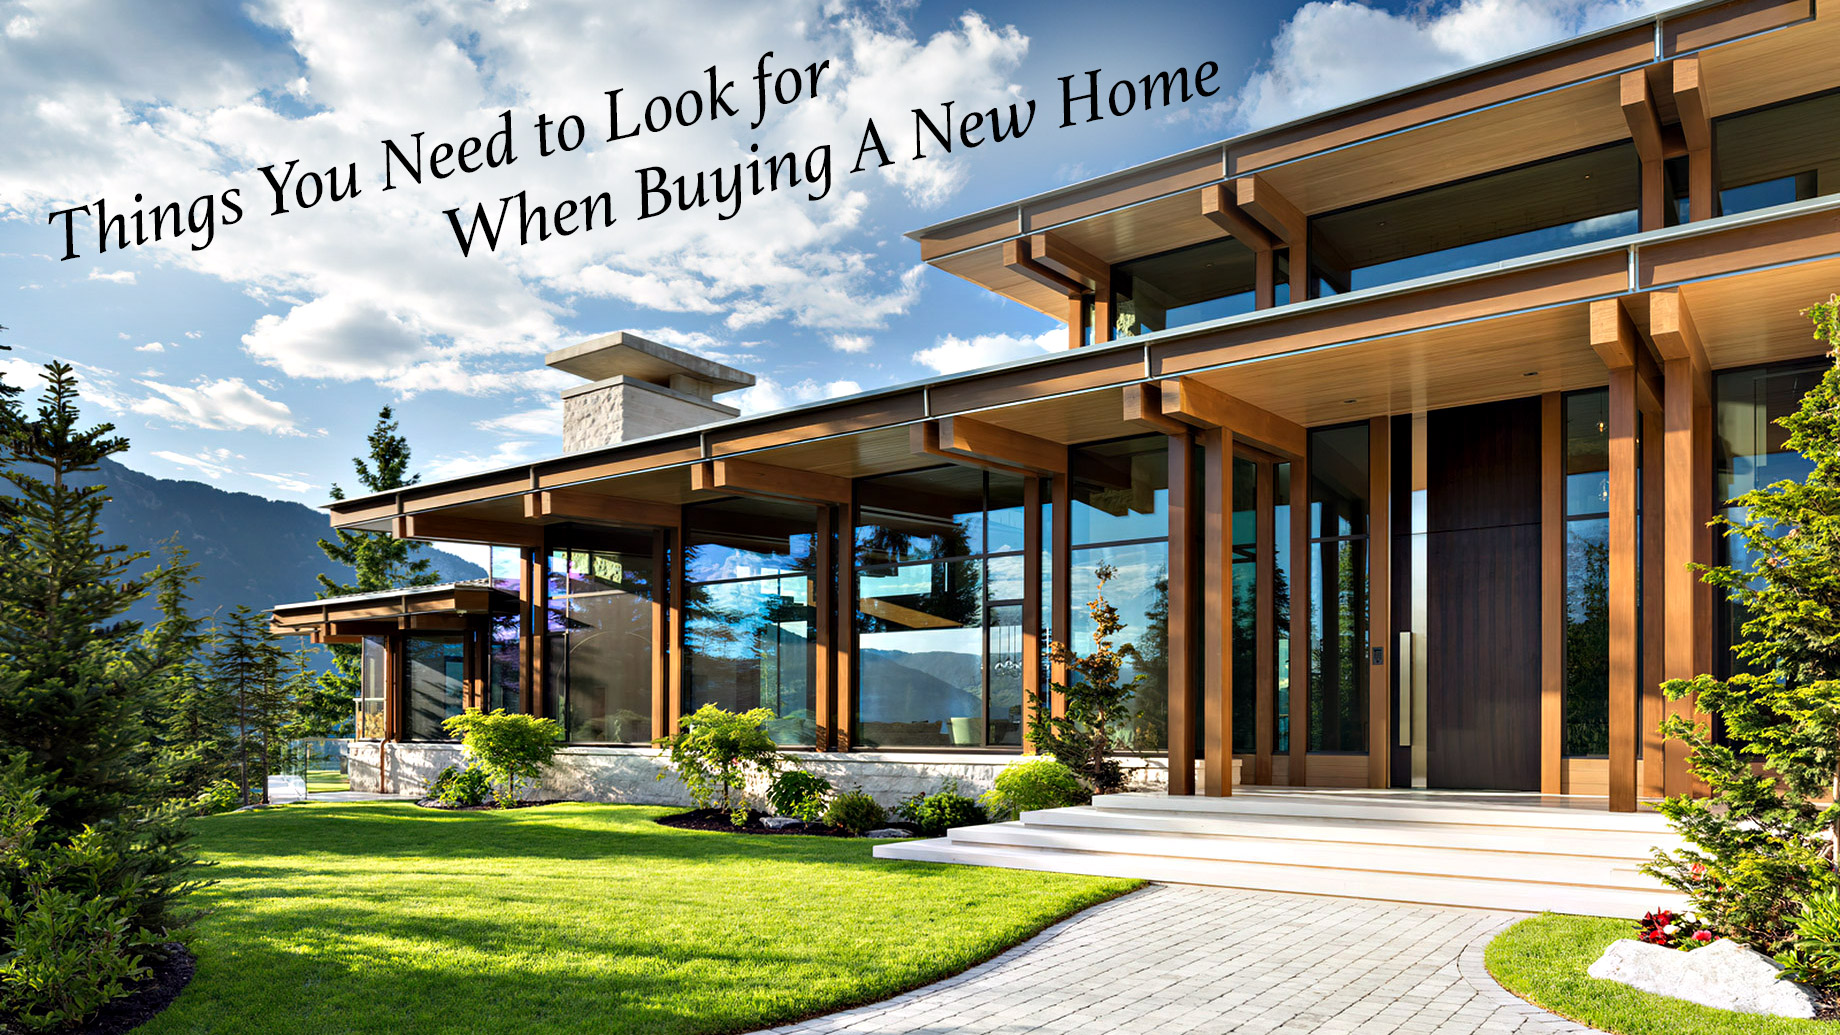 Things You Need to Look for When Buying A New Home